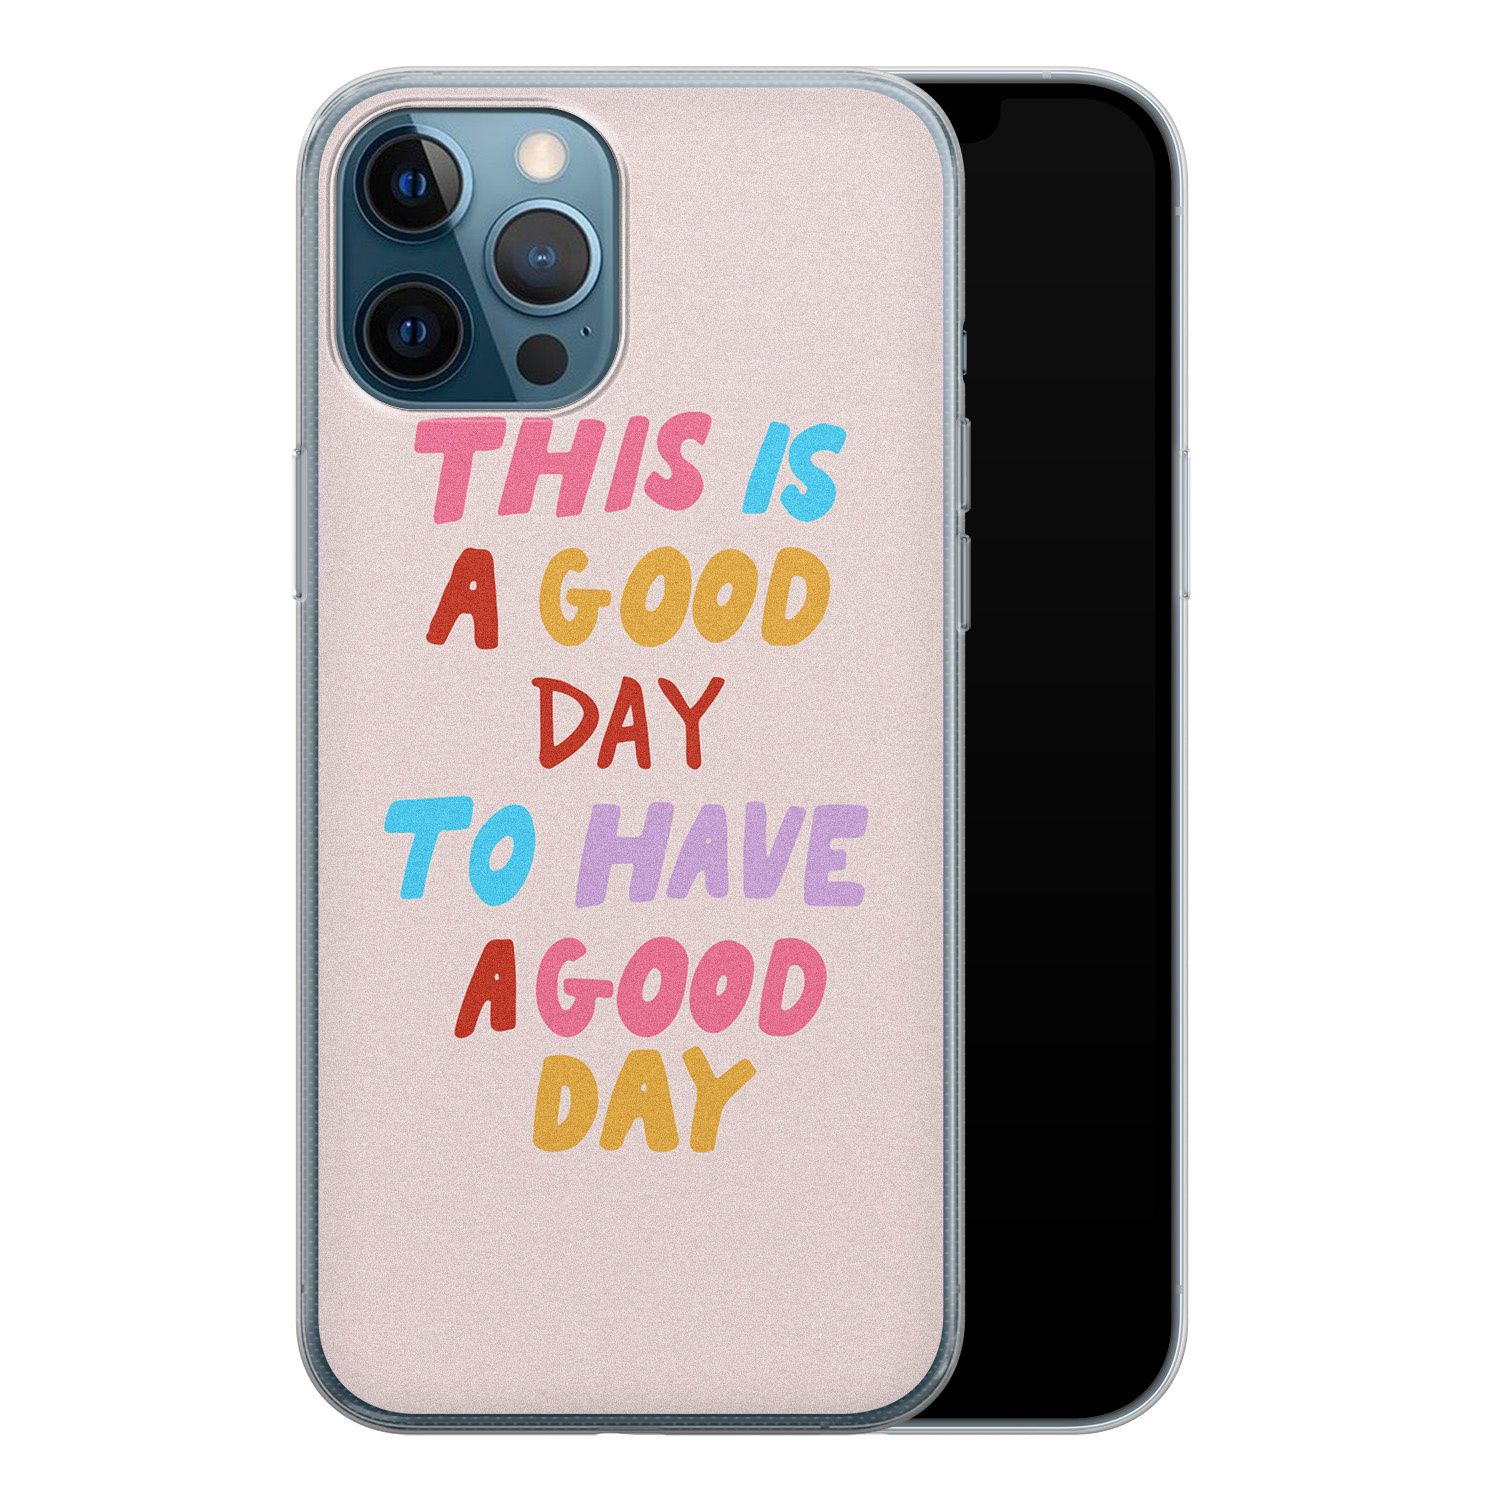 iPhone 12 Pro siliconen hoesje - This is a good day